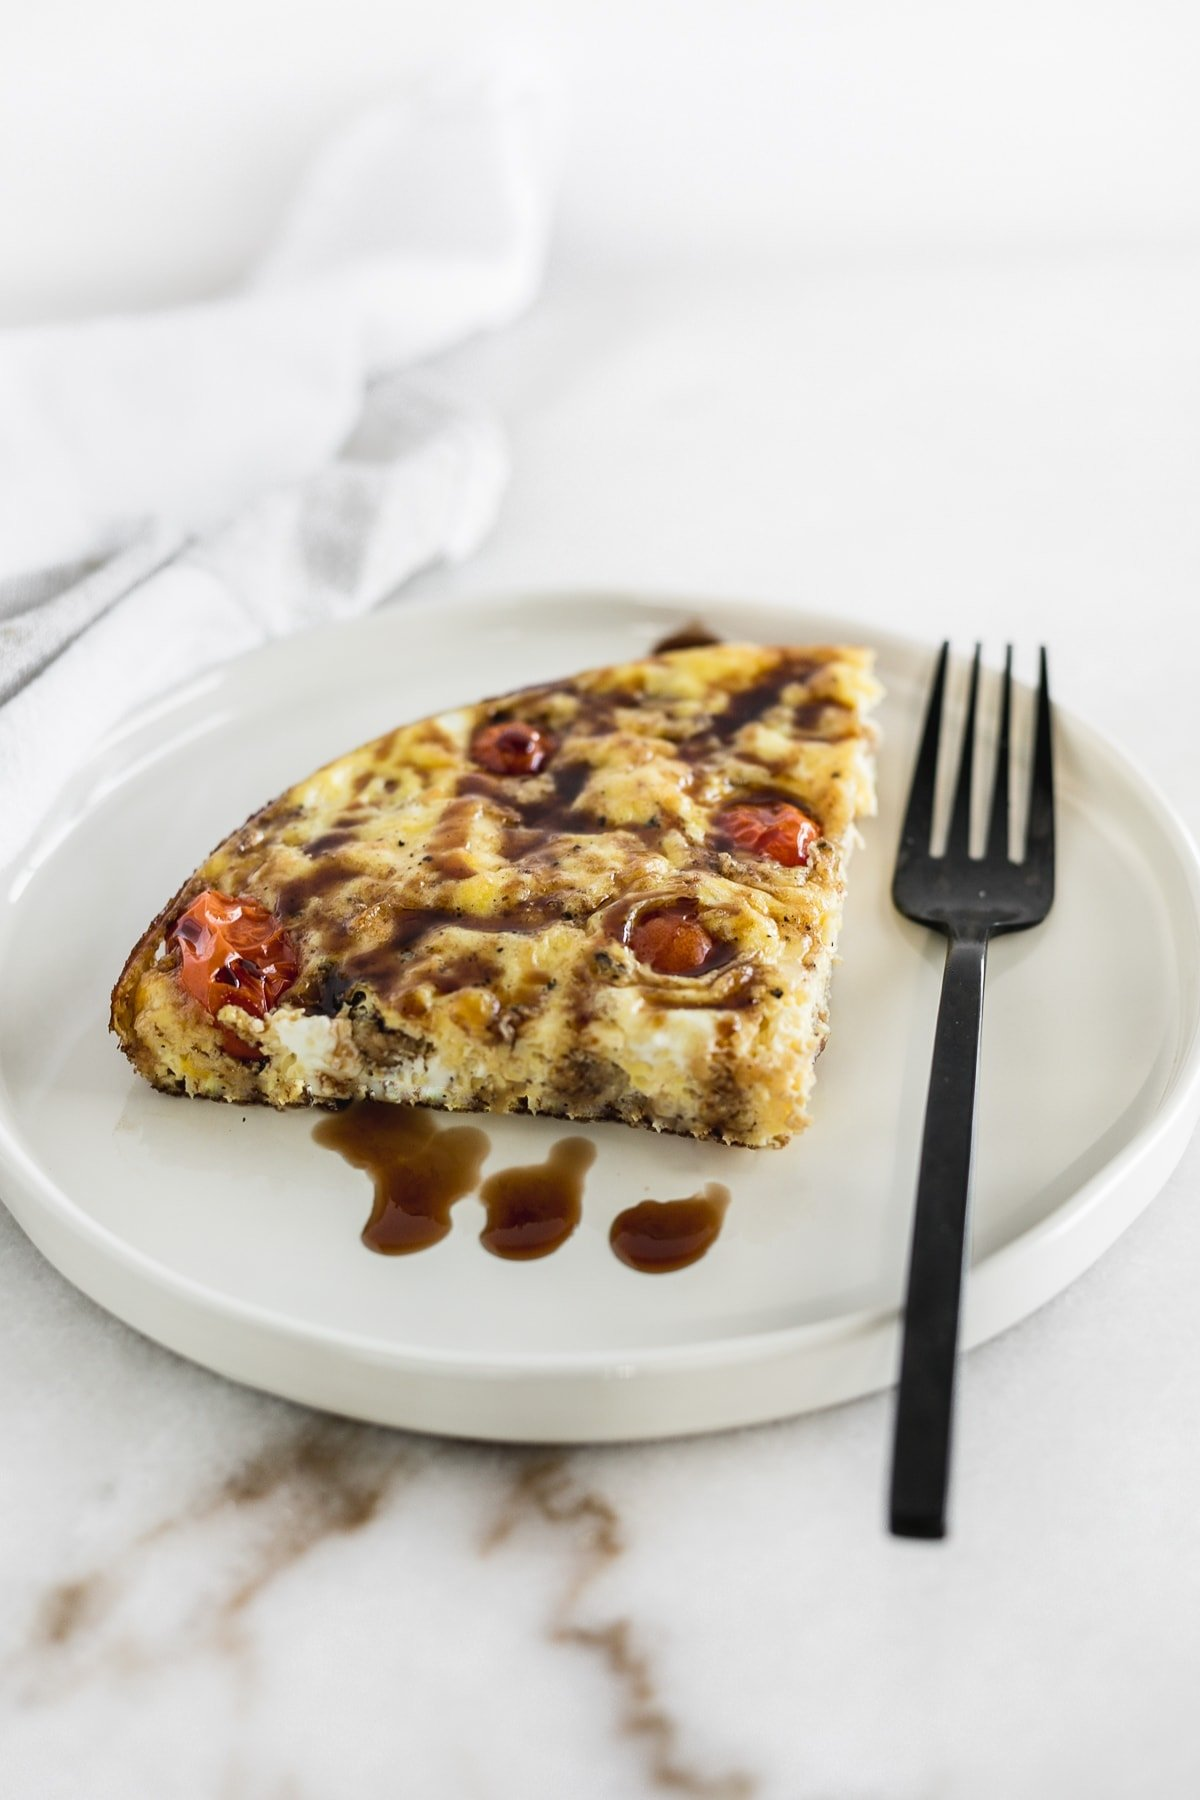 A slice of Italian sausage and tomato frittata on a white plate.